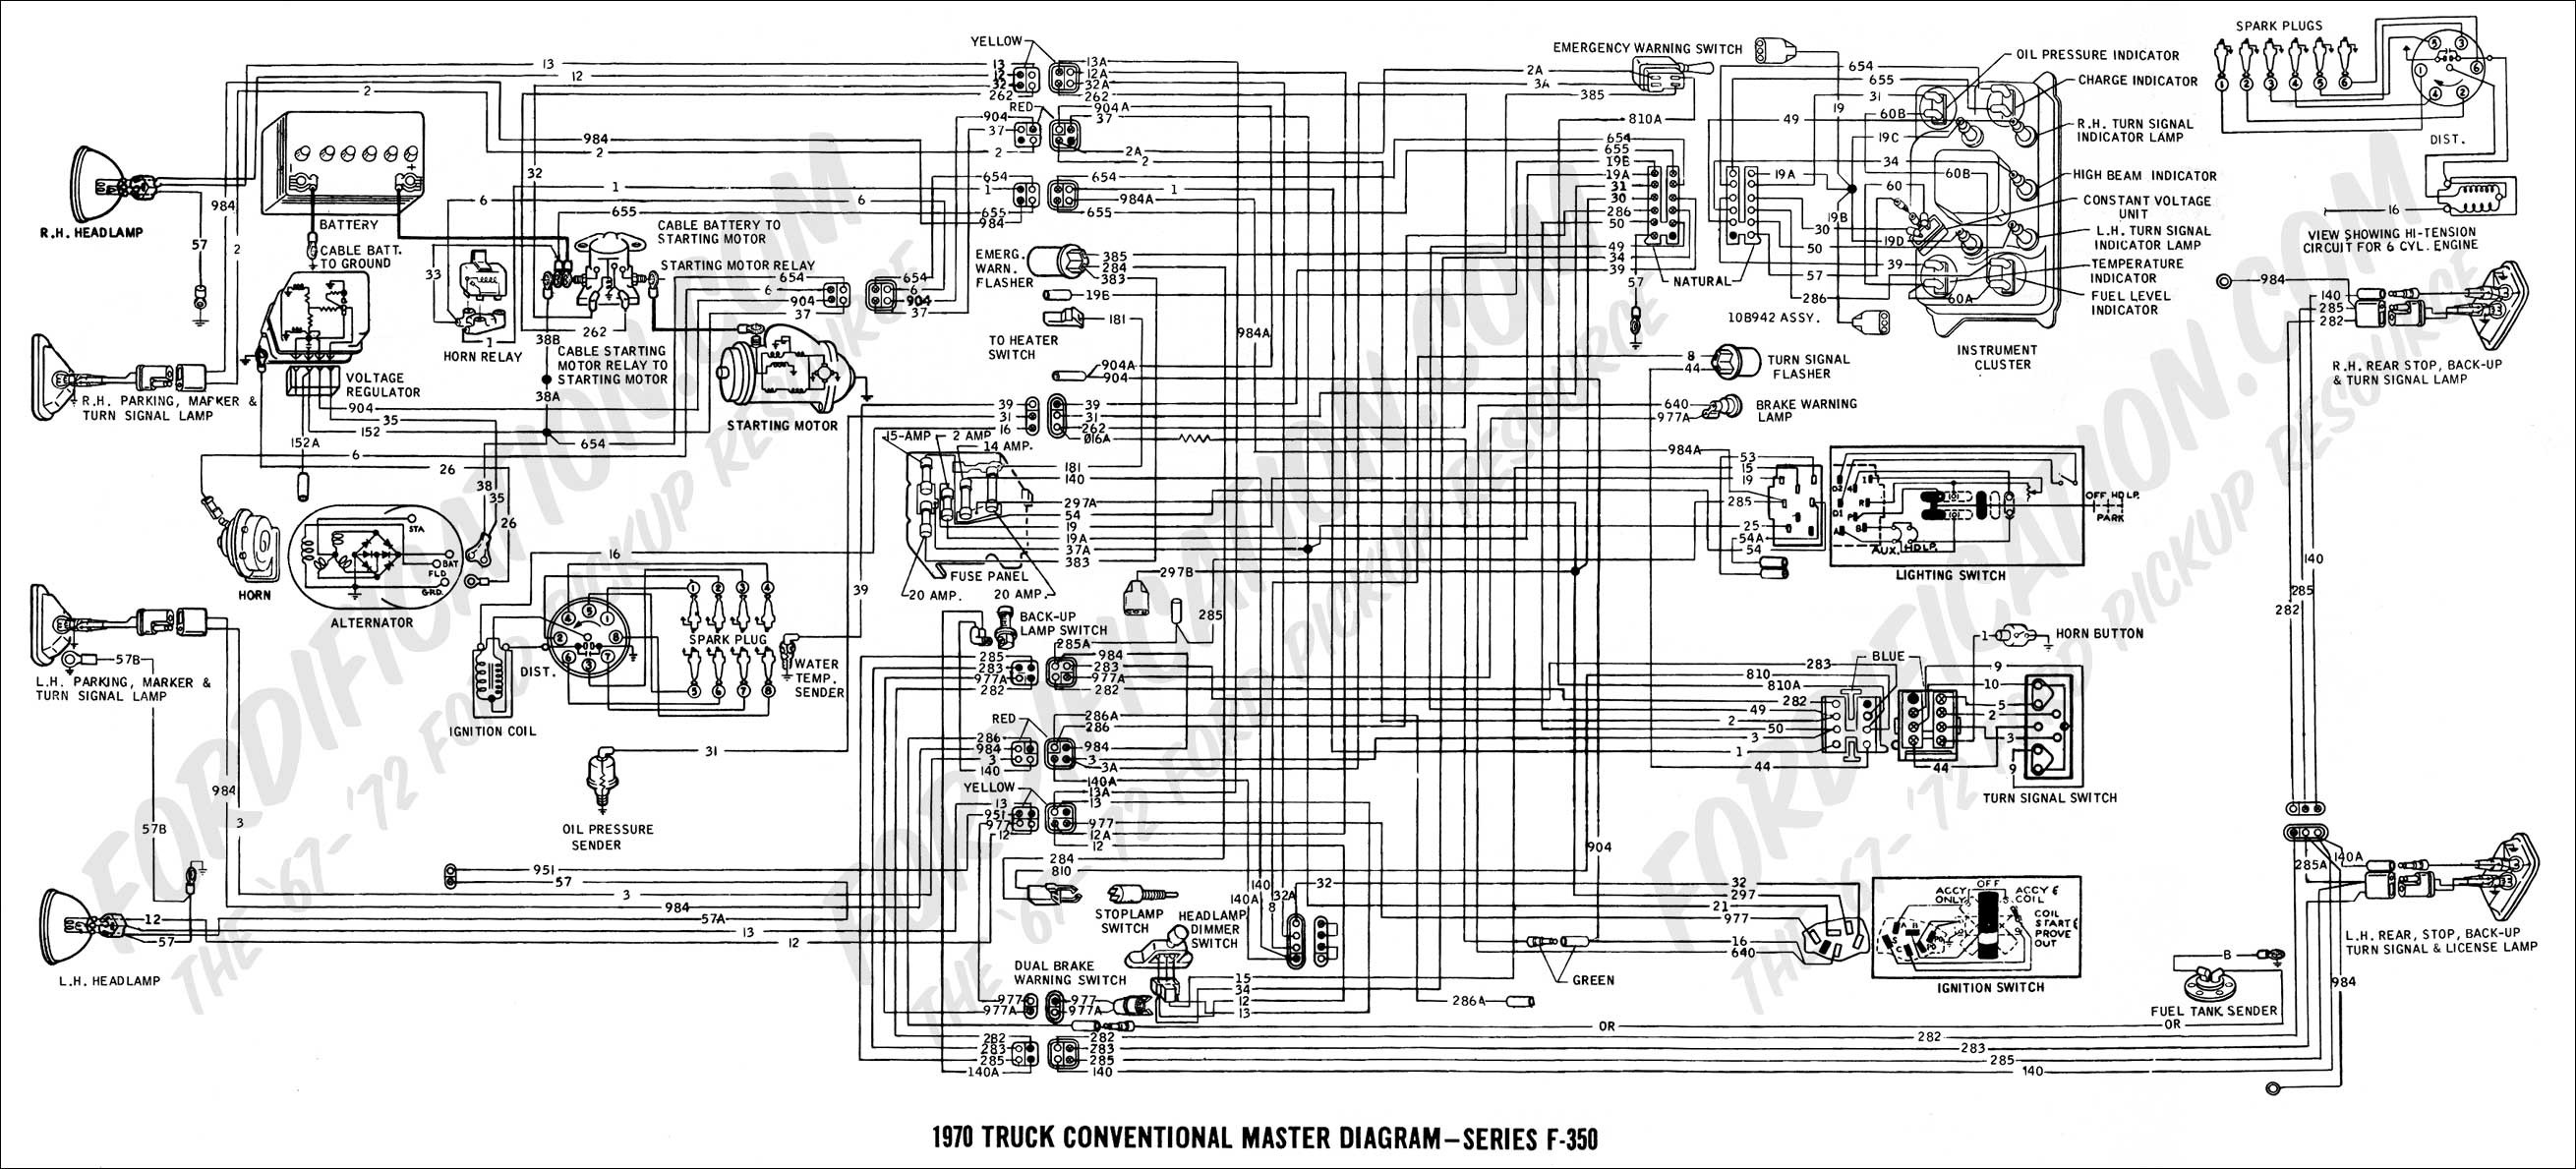 Ford 302 Engine Diagram ford Truck Technical Drawings and Schematics Section H Wiring Fair Of Ford 302 Engine Diagram